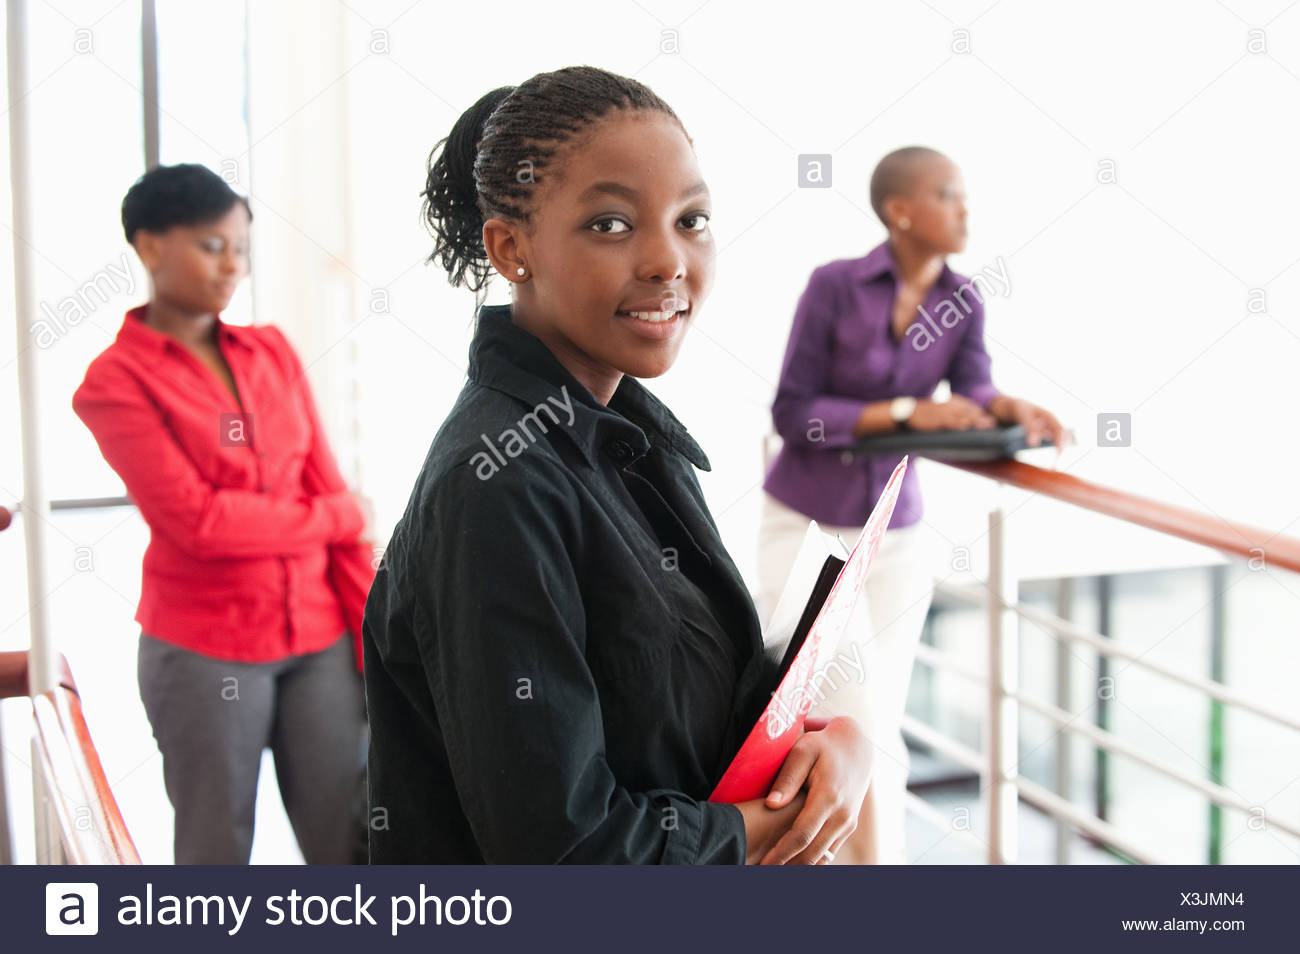 Portrait of young businesswoman with two women in background, Johannesburg, Gauteng Province, South Africa - Stock Image